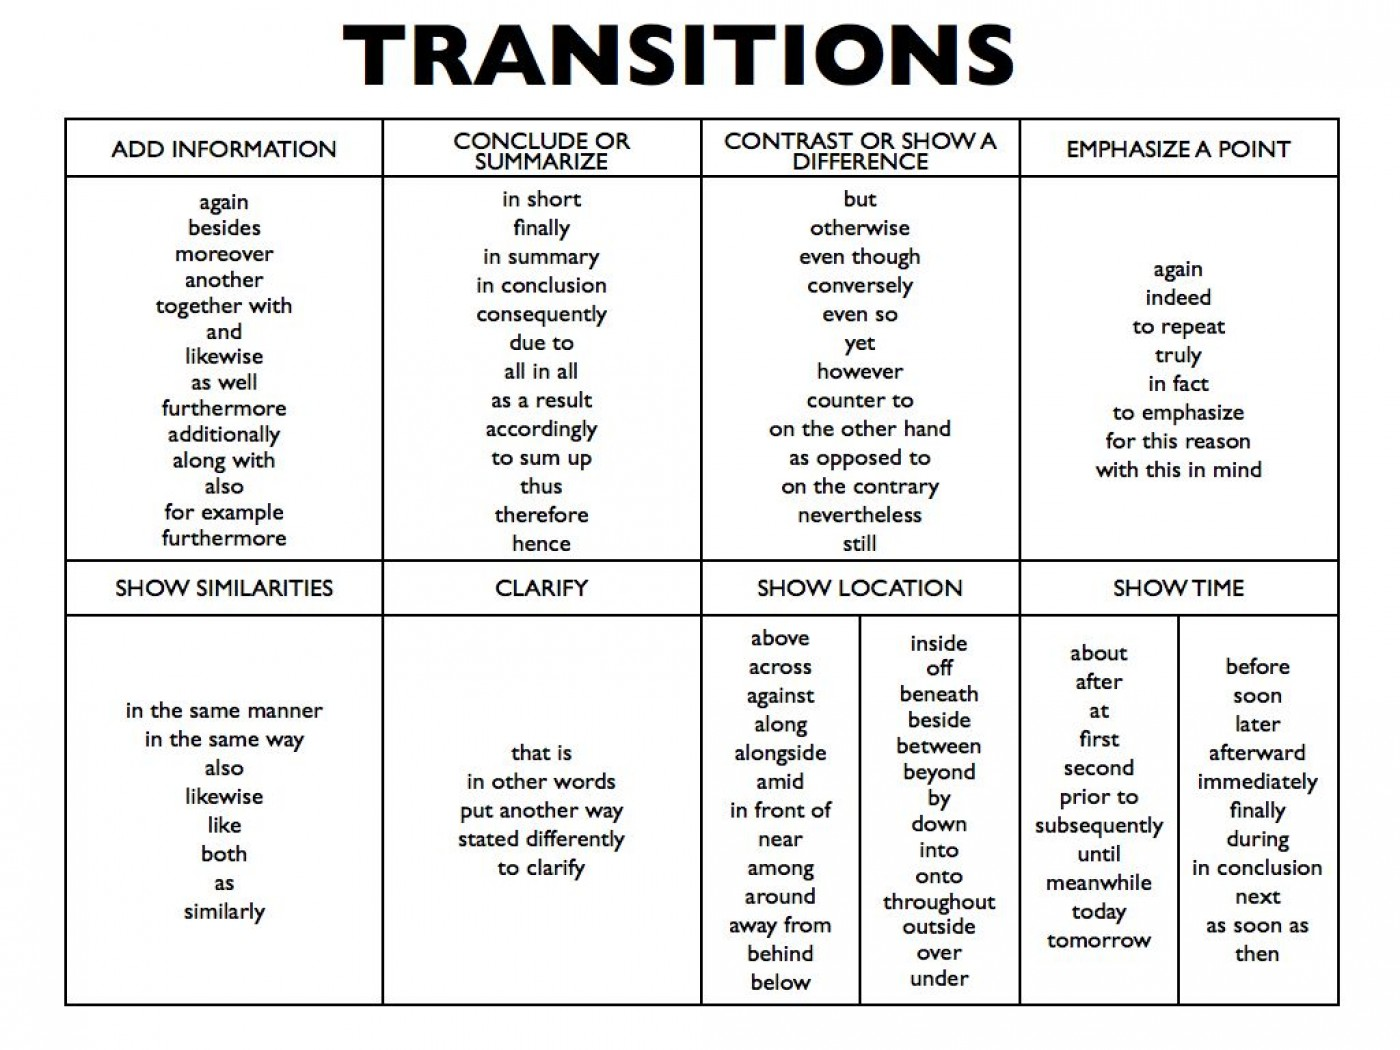 005 Essay Example Transitions 4995883 1 Orig Archaicawful Transition Words List For Contrast Sentence Examples Conclusion In Spanish 1400